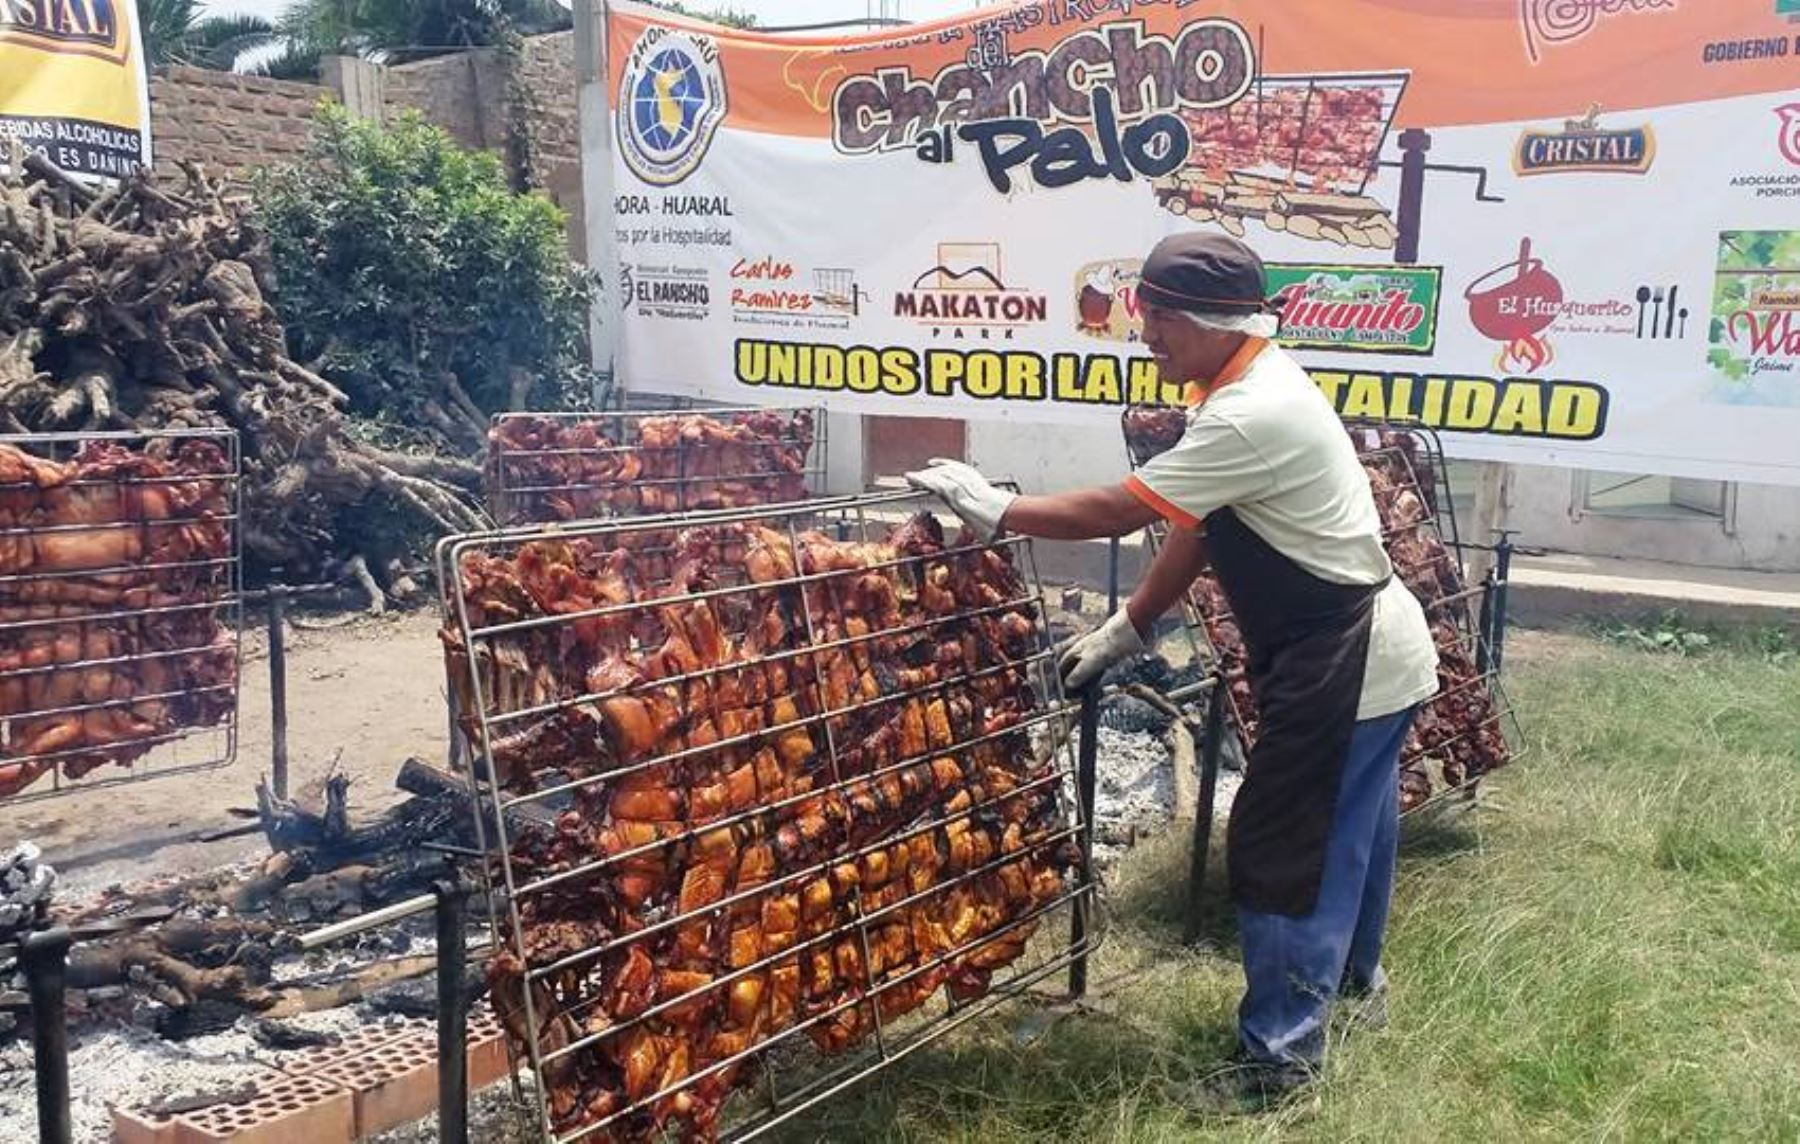 Peru's roasted pork festival might take place in the U.S. in 2017